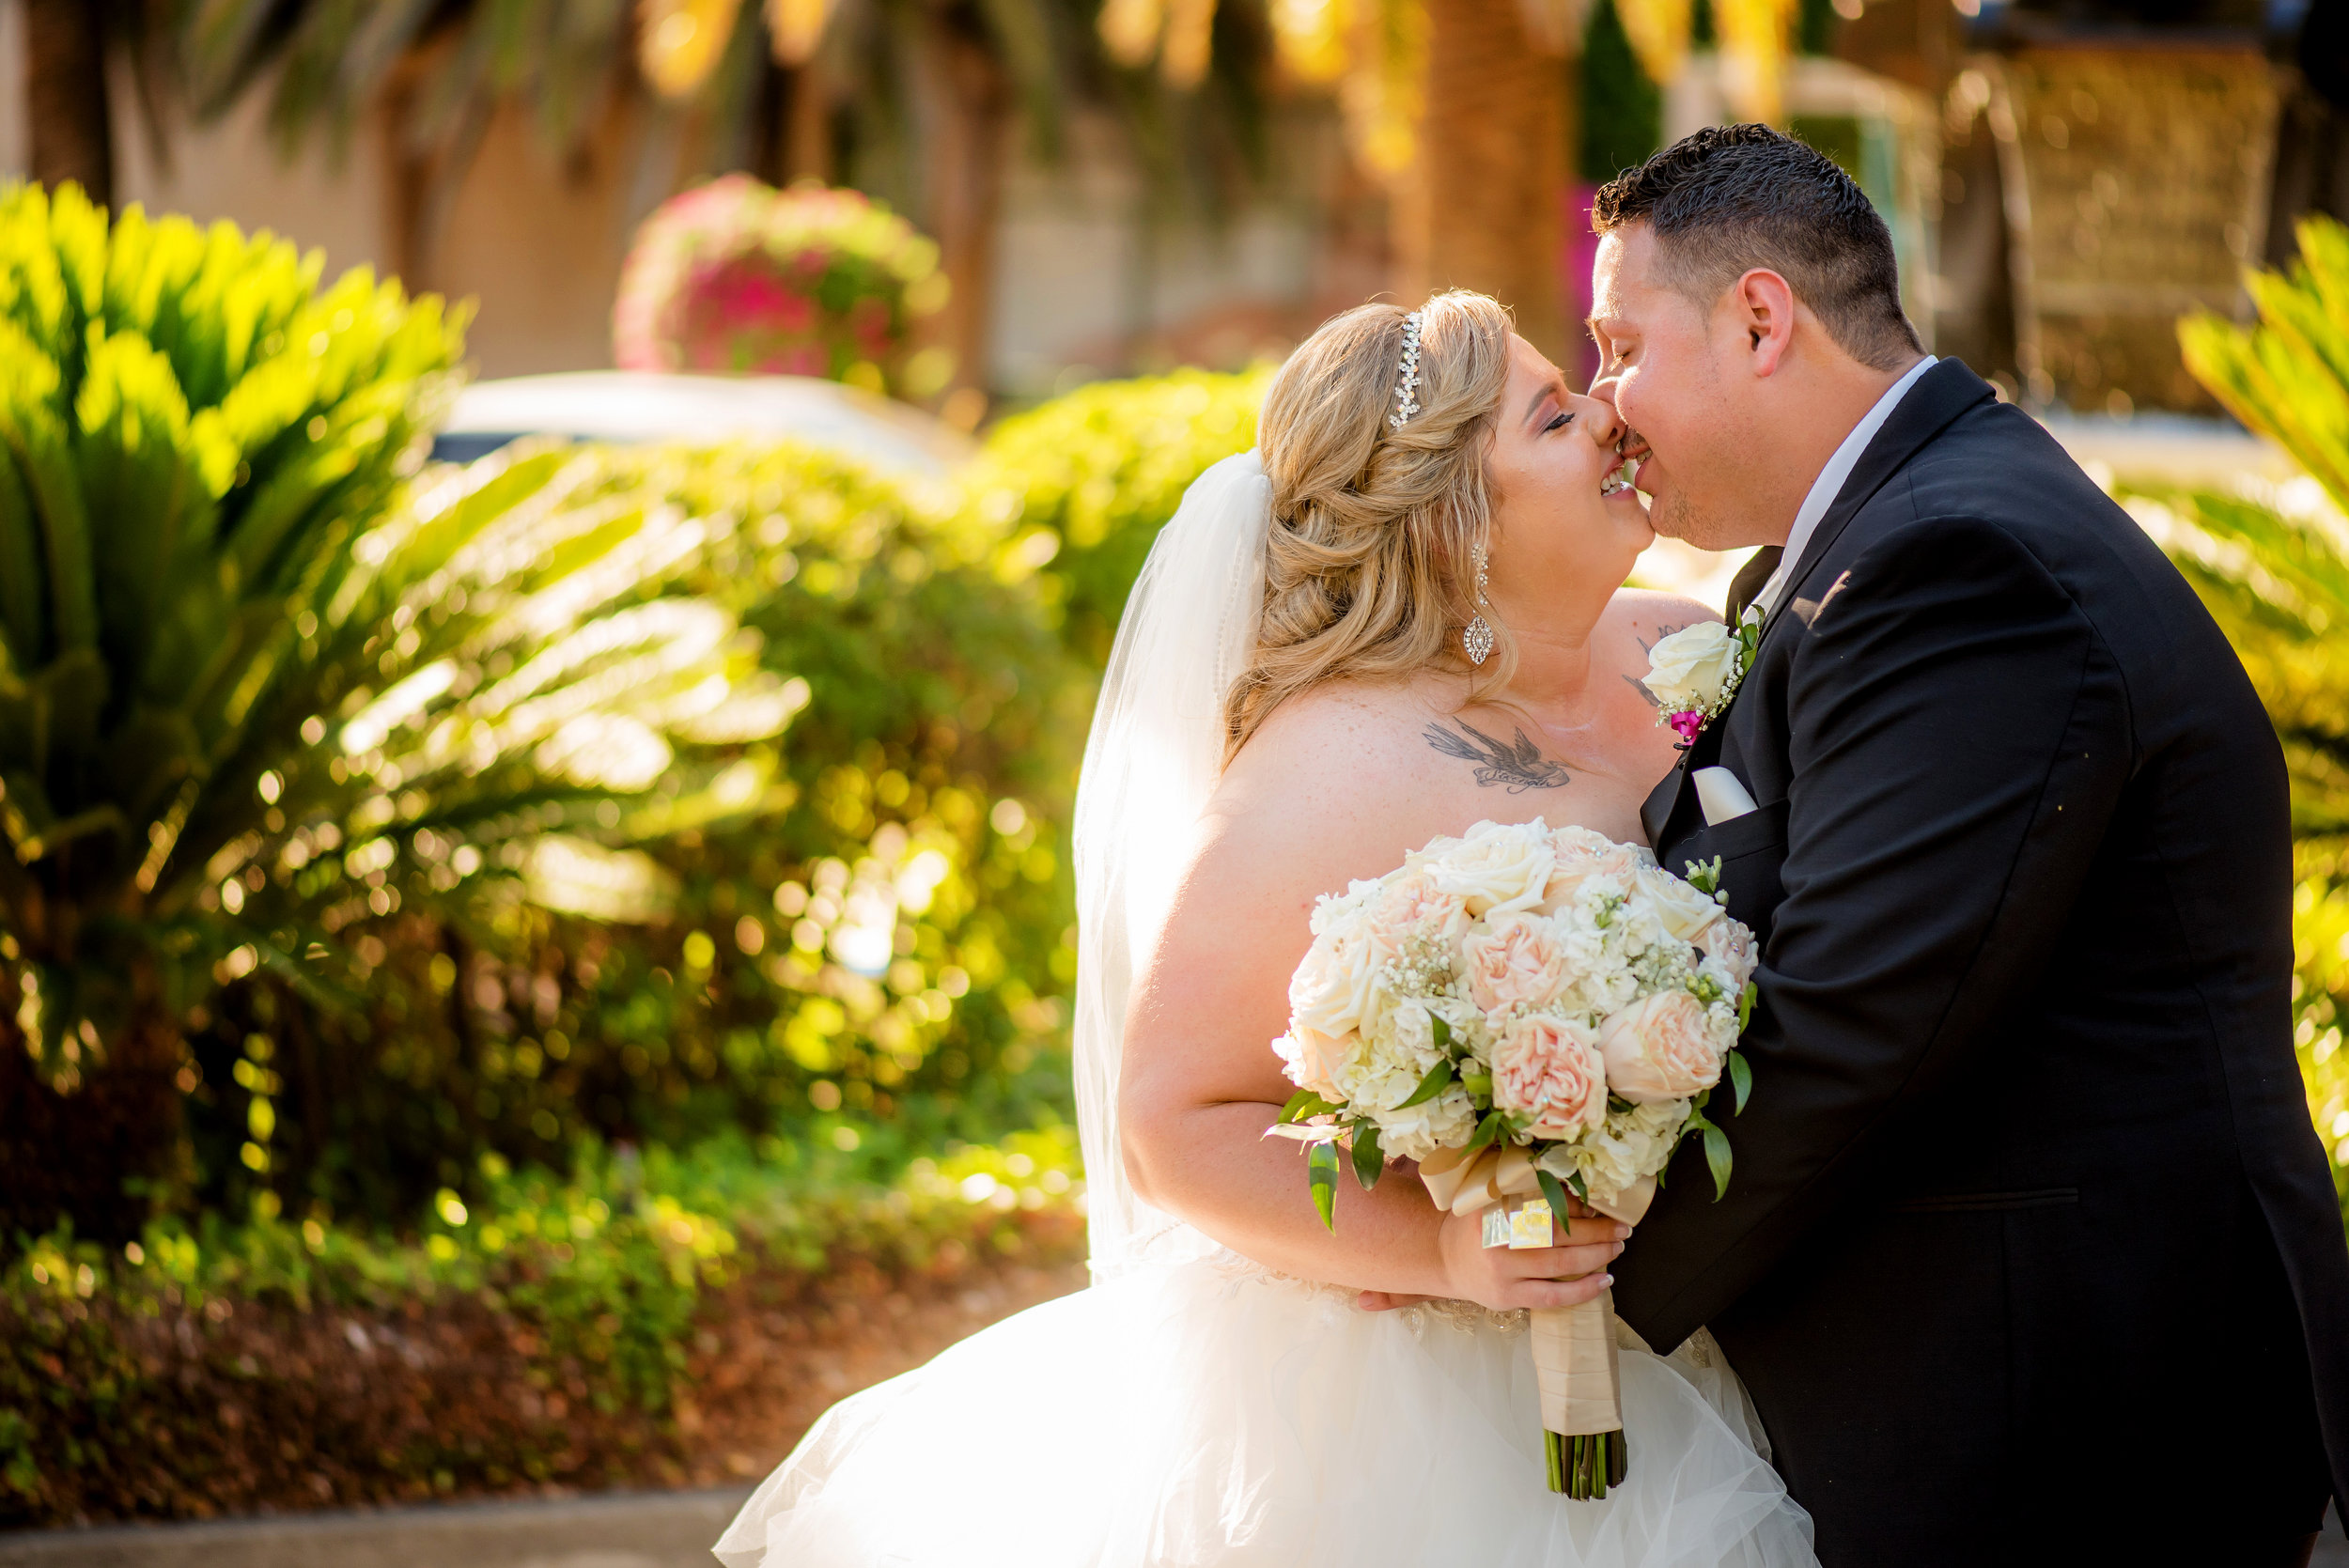 Wedding portrait of bride and groom at Arden Hills Club and Spa in Sacramento California.